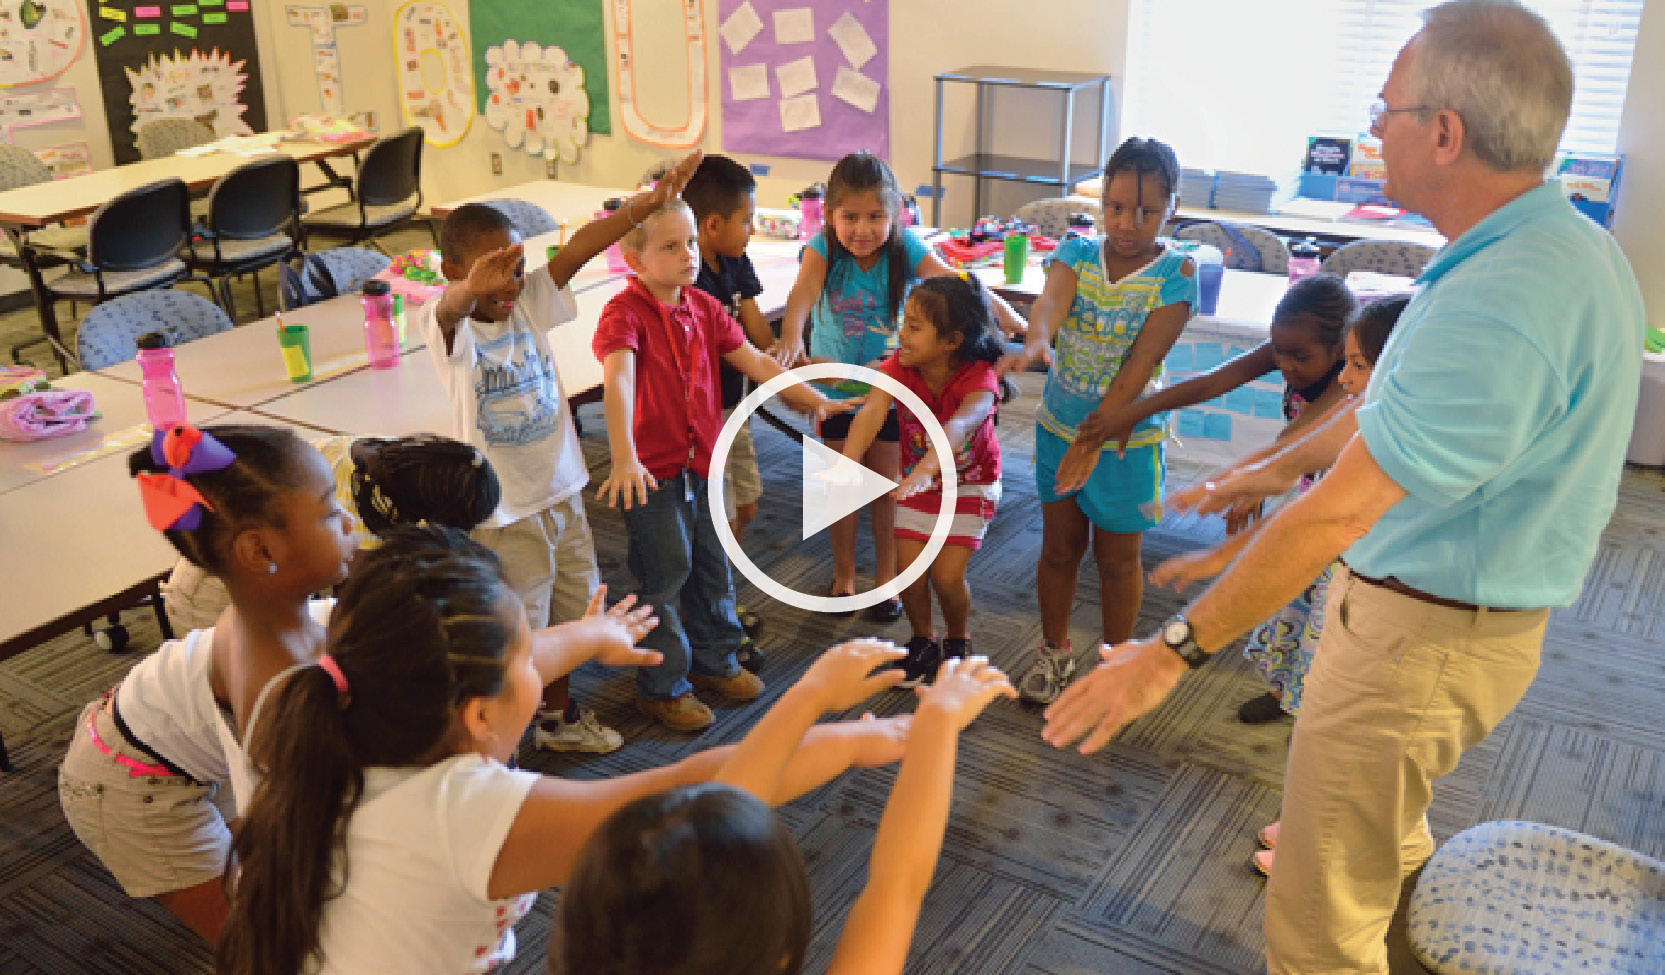 Worksheet School Learning Programs summer enrichment learning programs for low income children horizons national is an award winning tuition free academic and program serving public school students on the